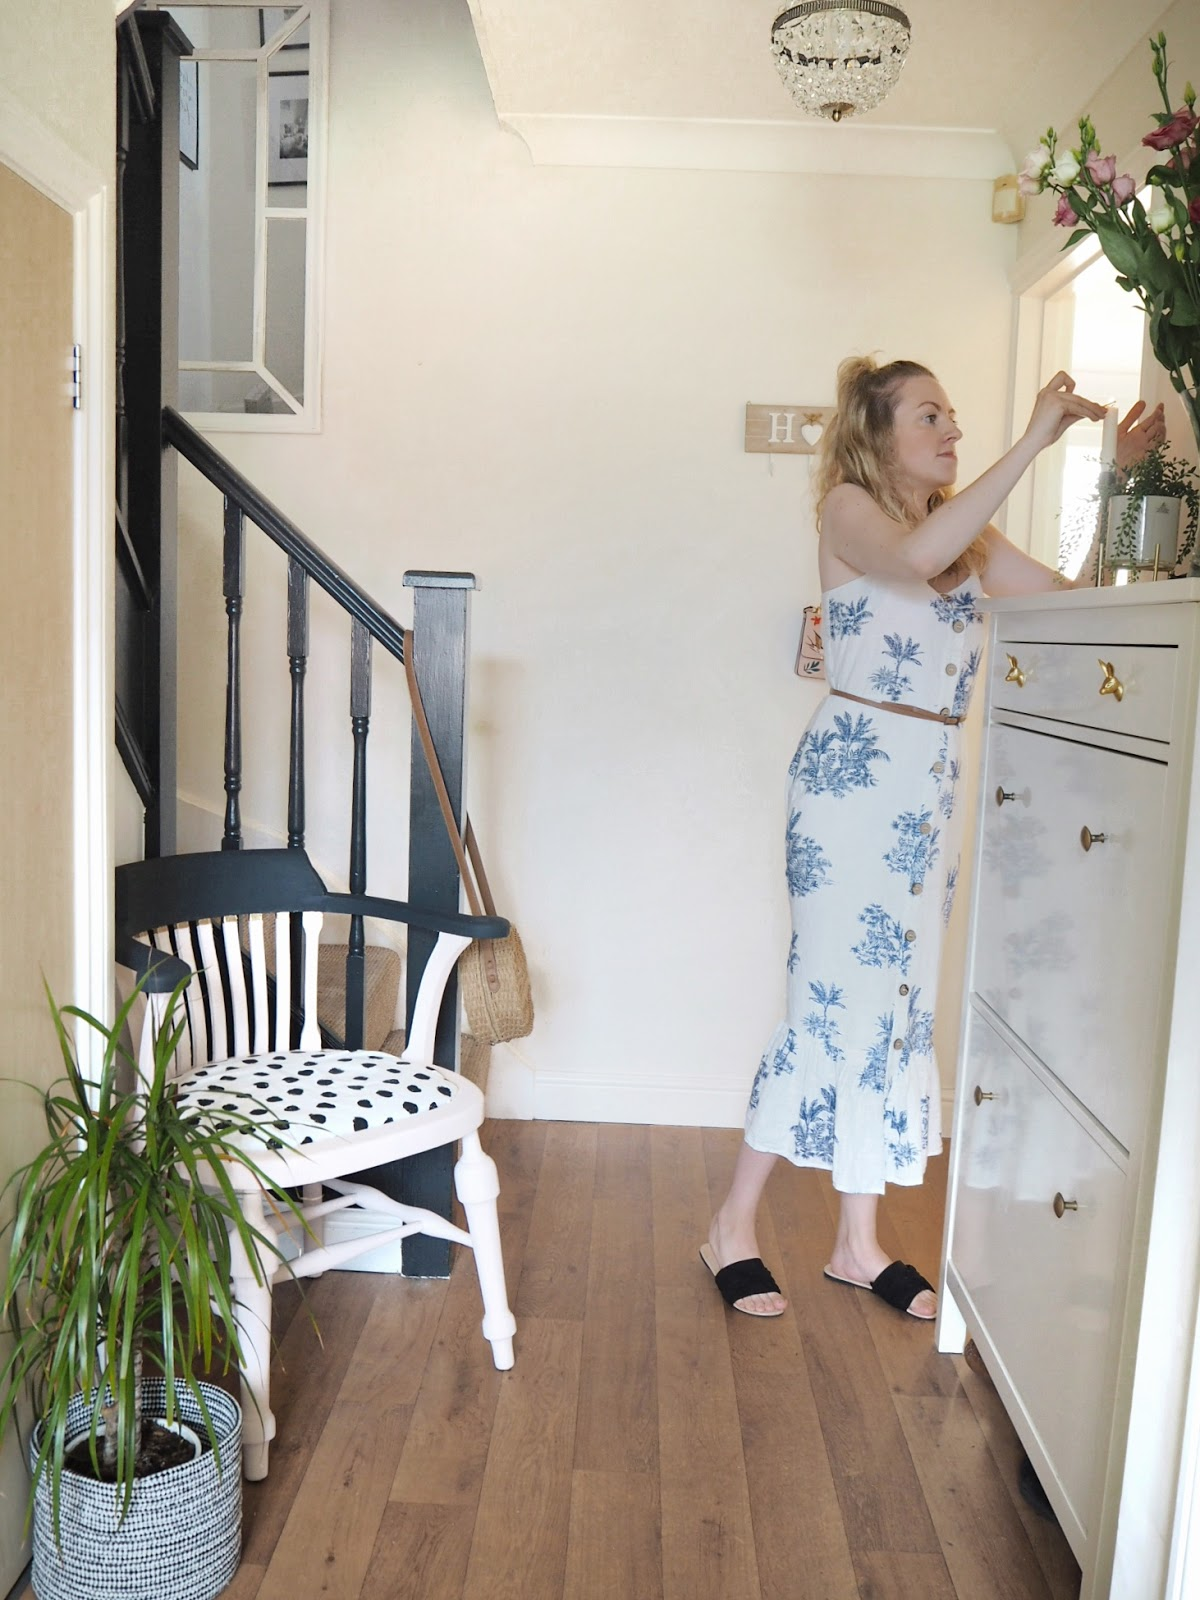 how to invest wisely into a temporary or rented home, without wasting money. keep landlords and future buyers in mind by choosing how to spend on somewhere that isn't your forever home. Investing in furniture you'll love forever, upcycling and transforming furniture without buying new, and making small updates on a budget.